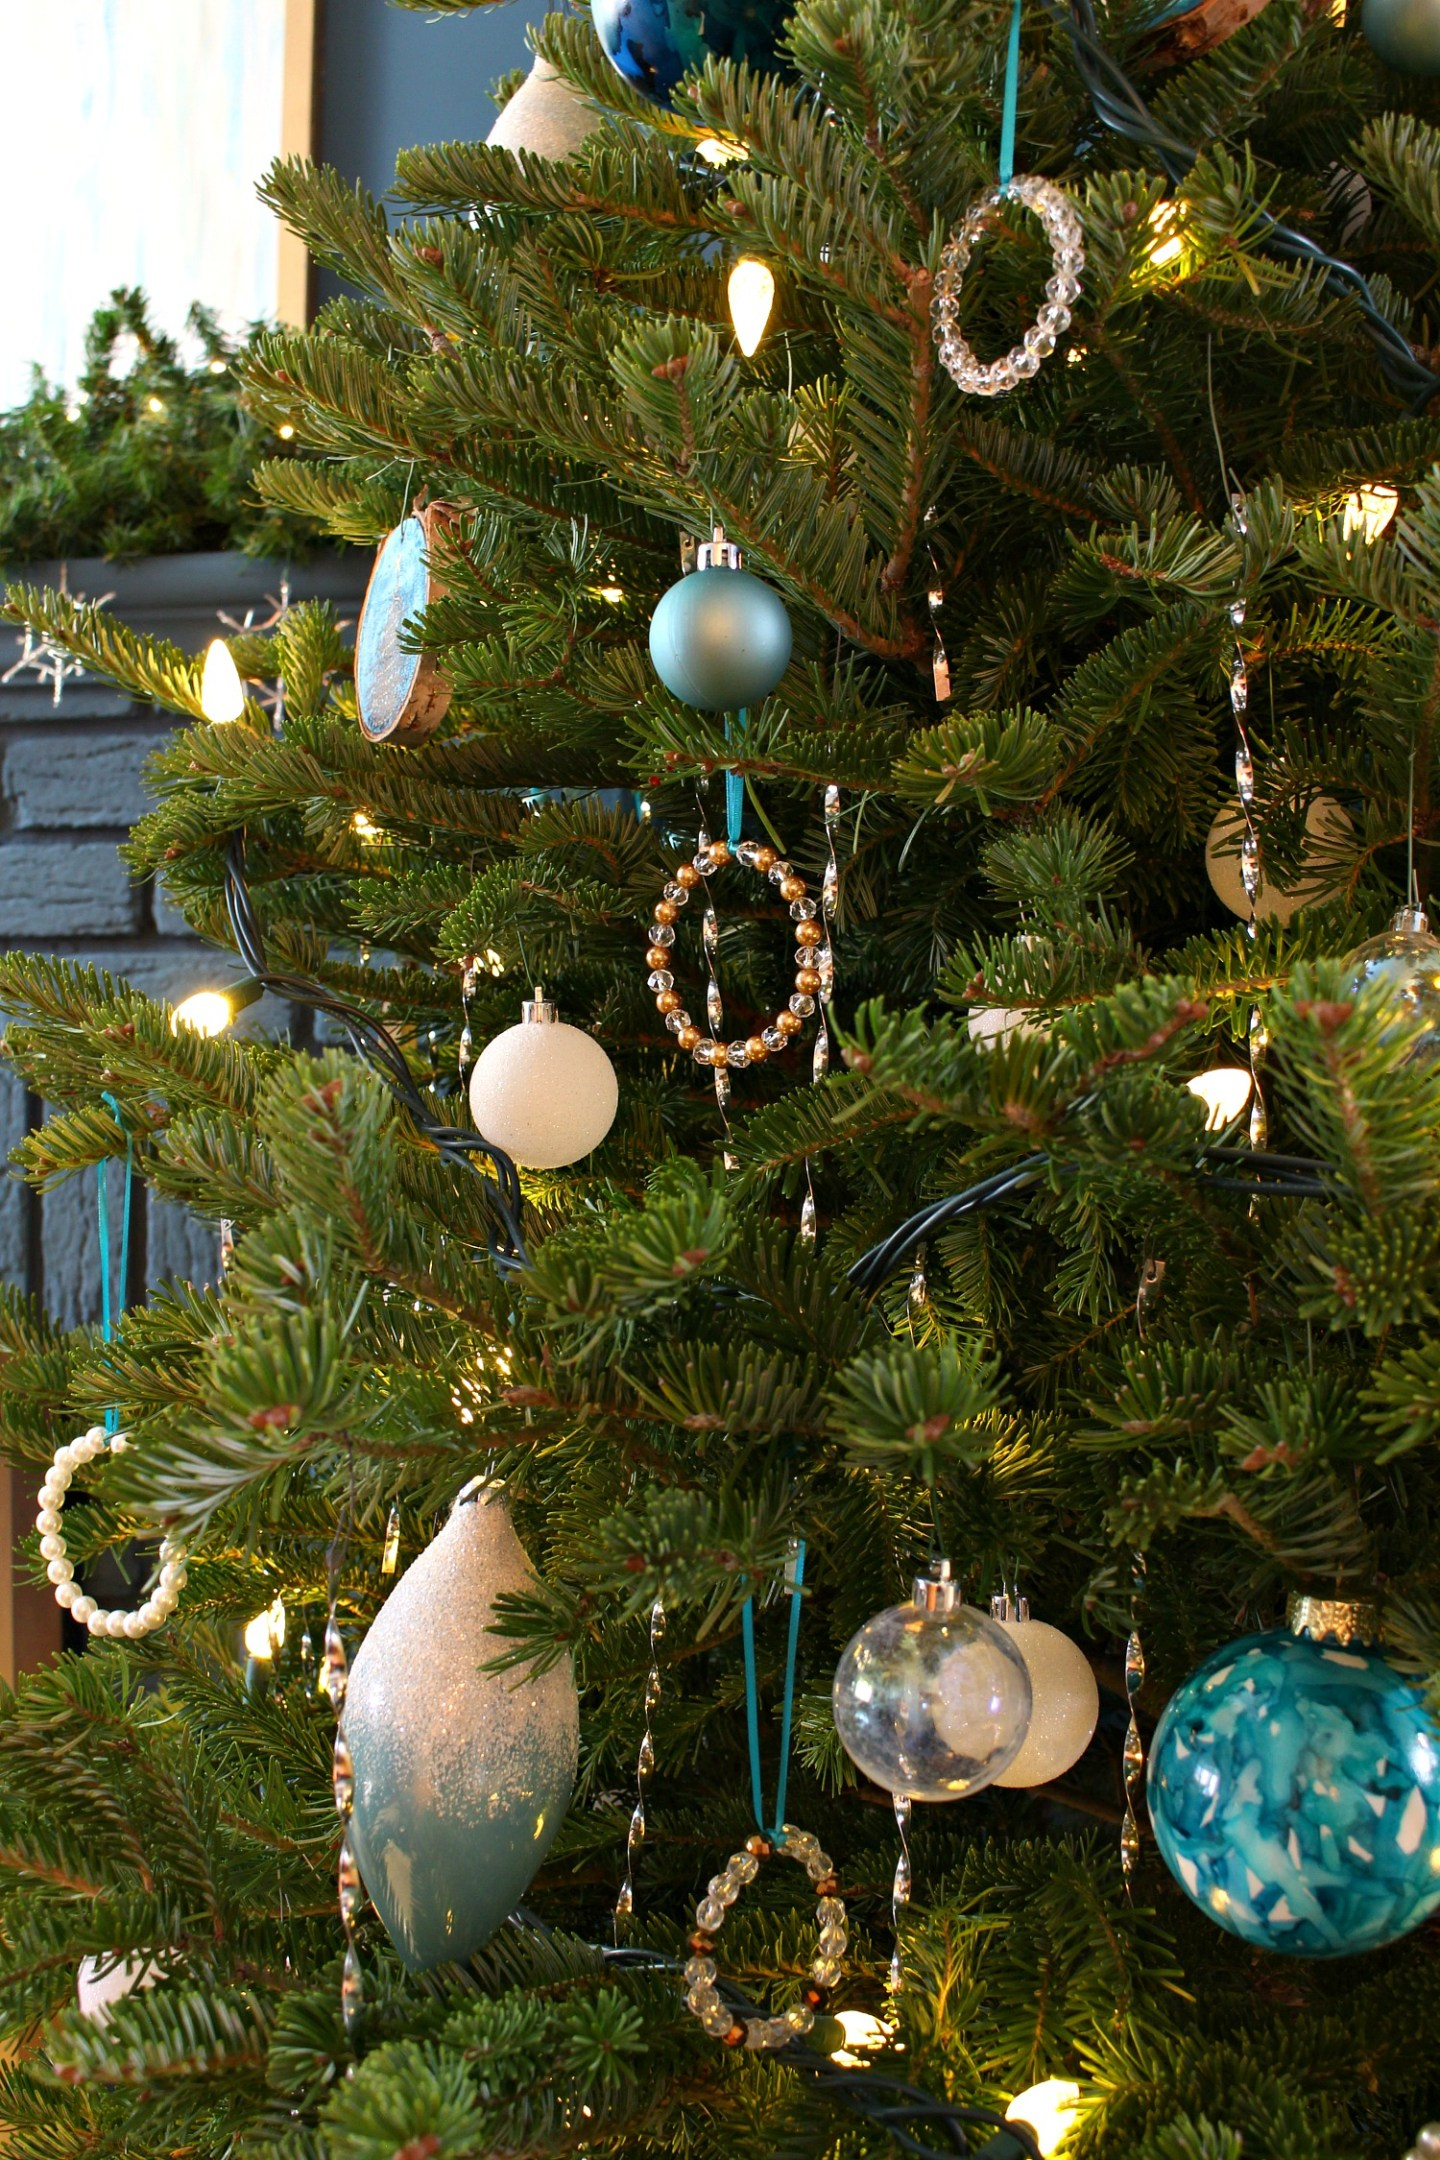 Upcycle Old Necklaces into Christmas Ornaments